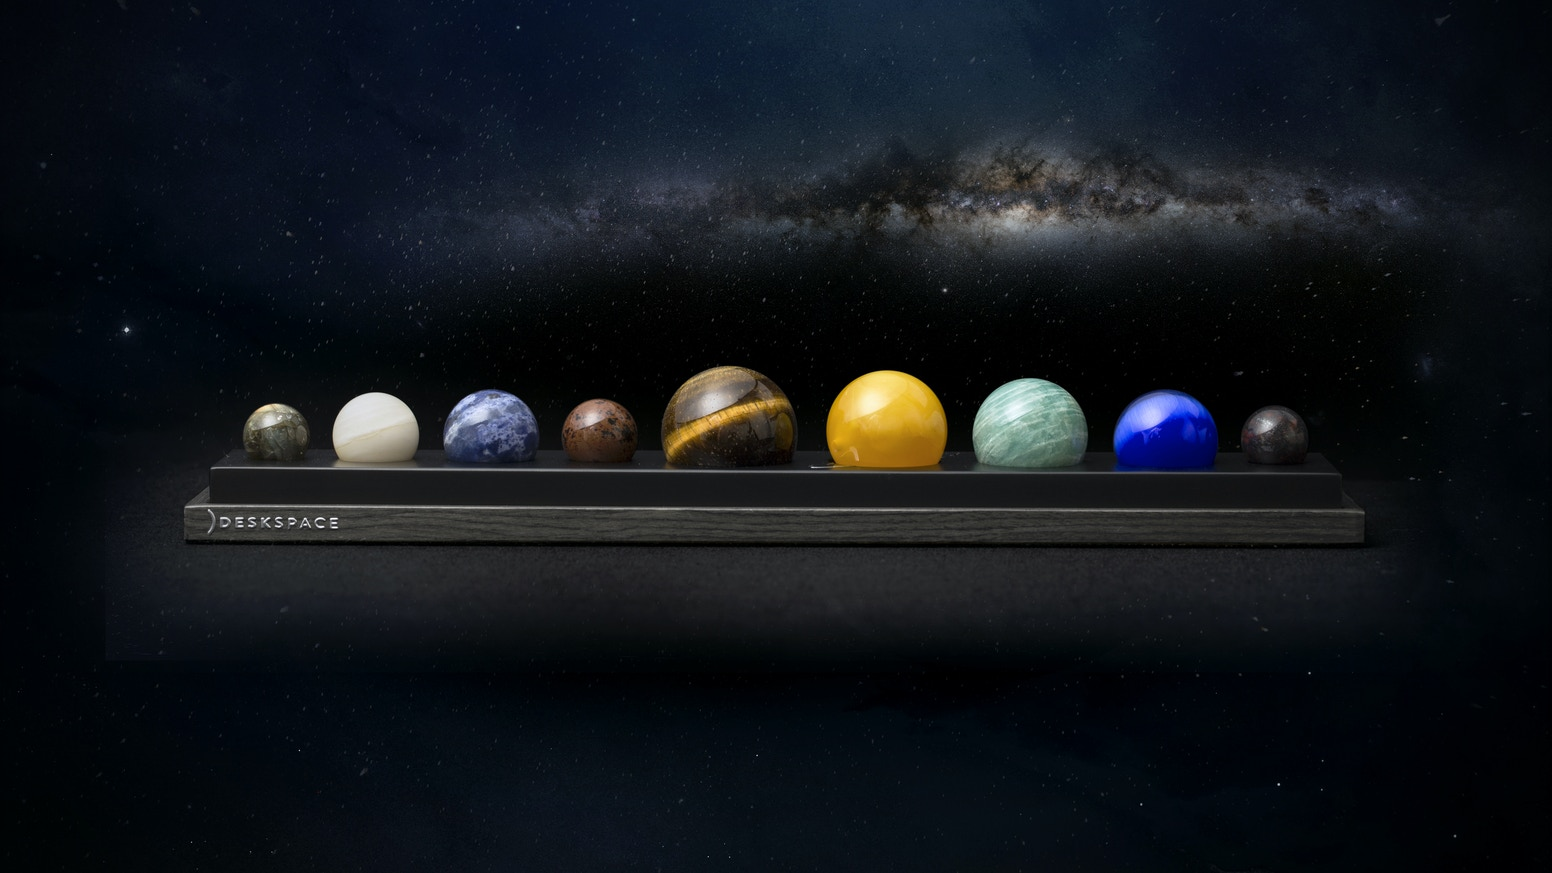 Handcrafted from nine different gems and minerals, experience the beauty of the solar system everyday from your desk.